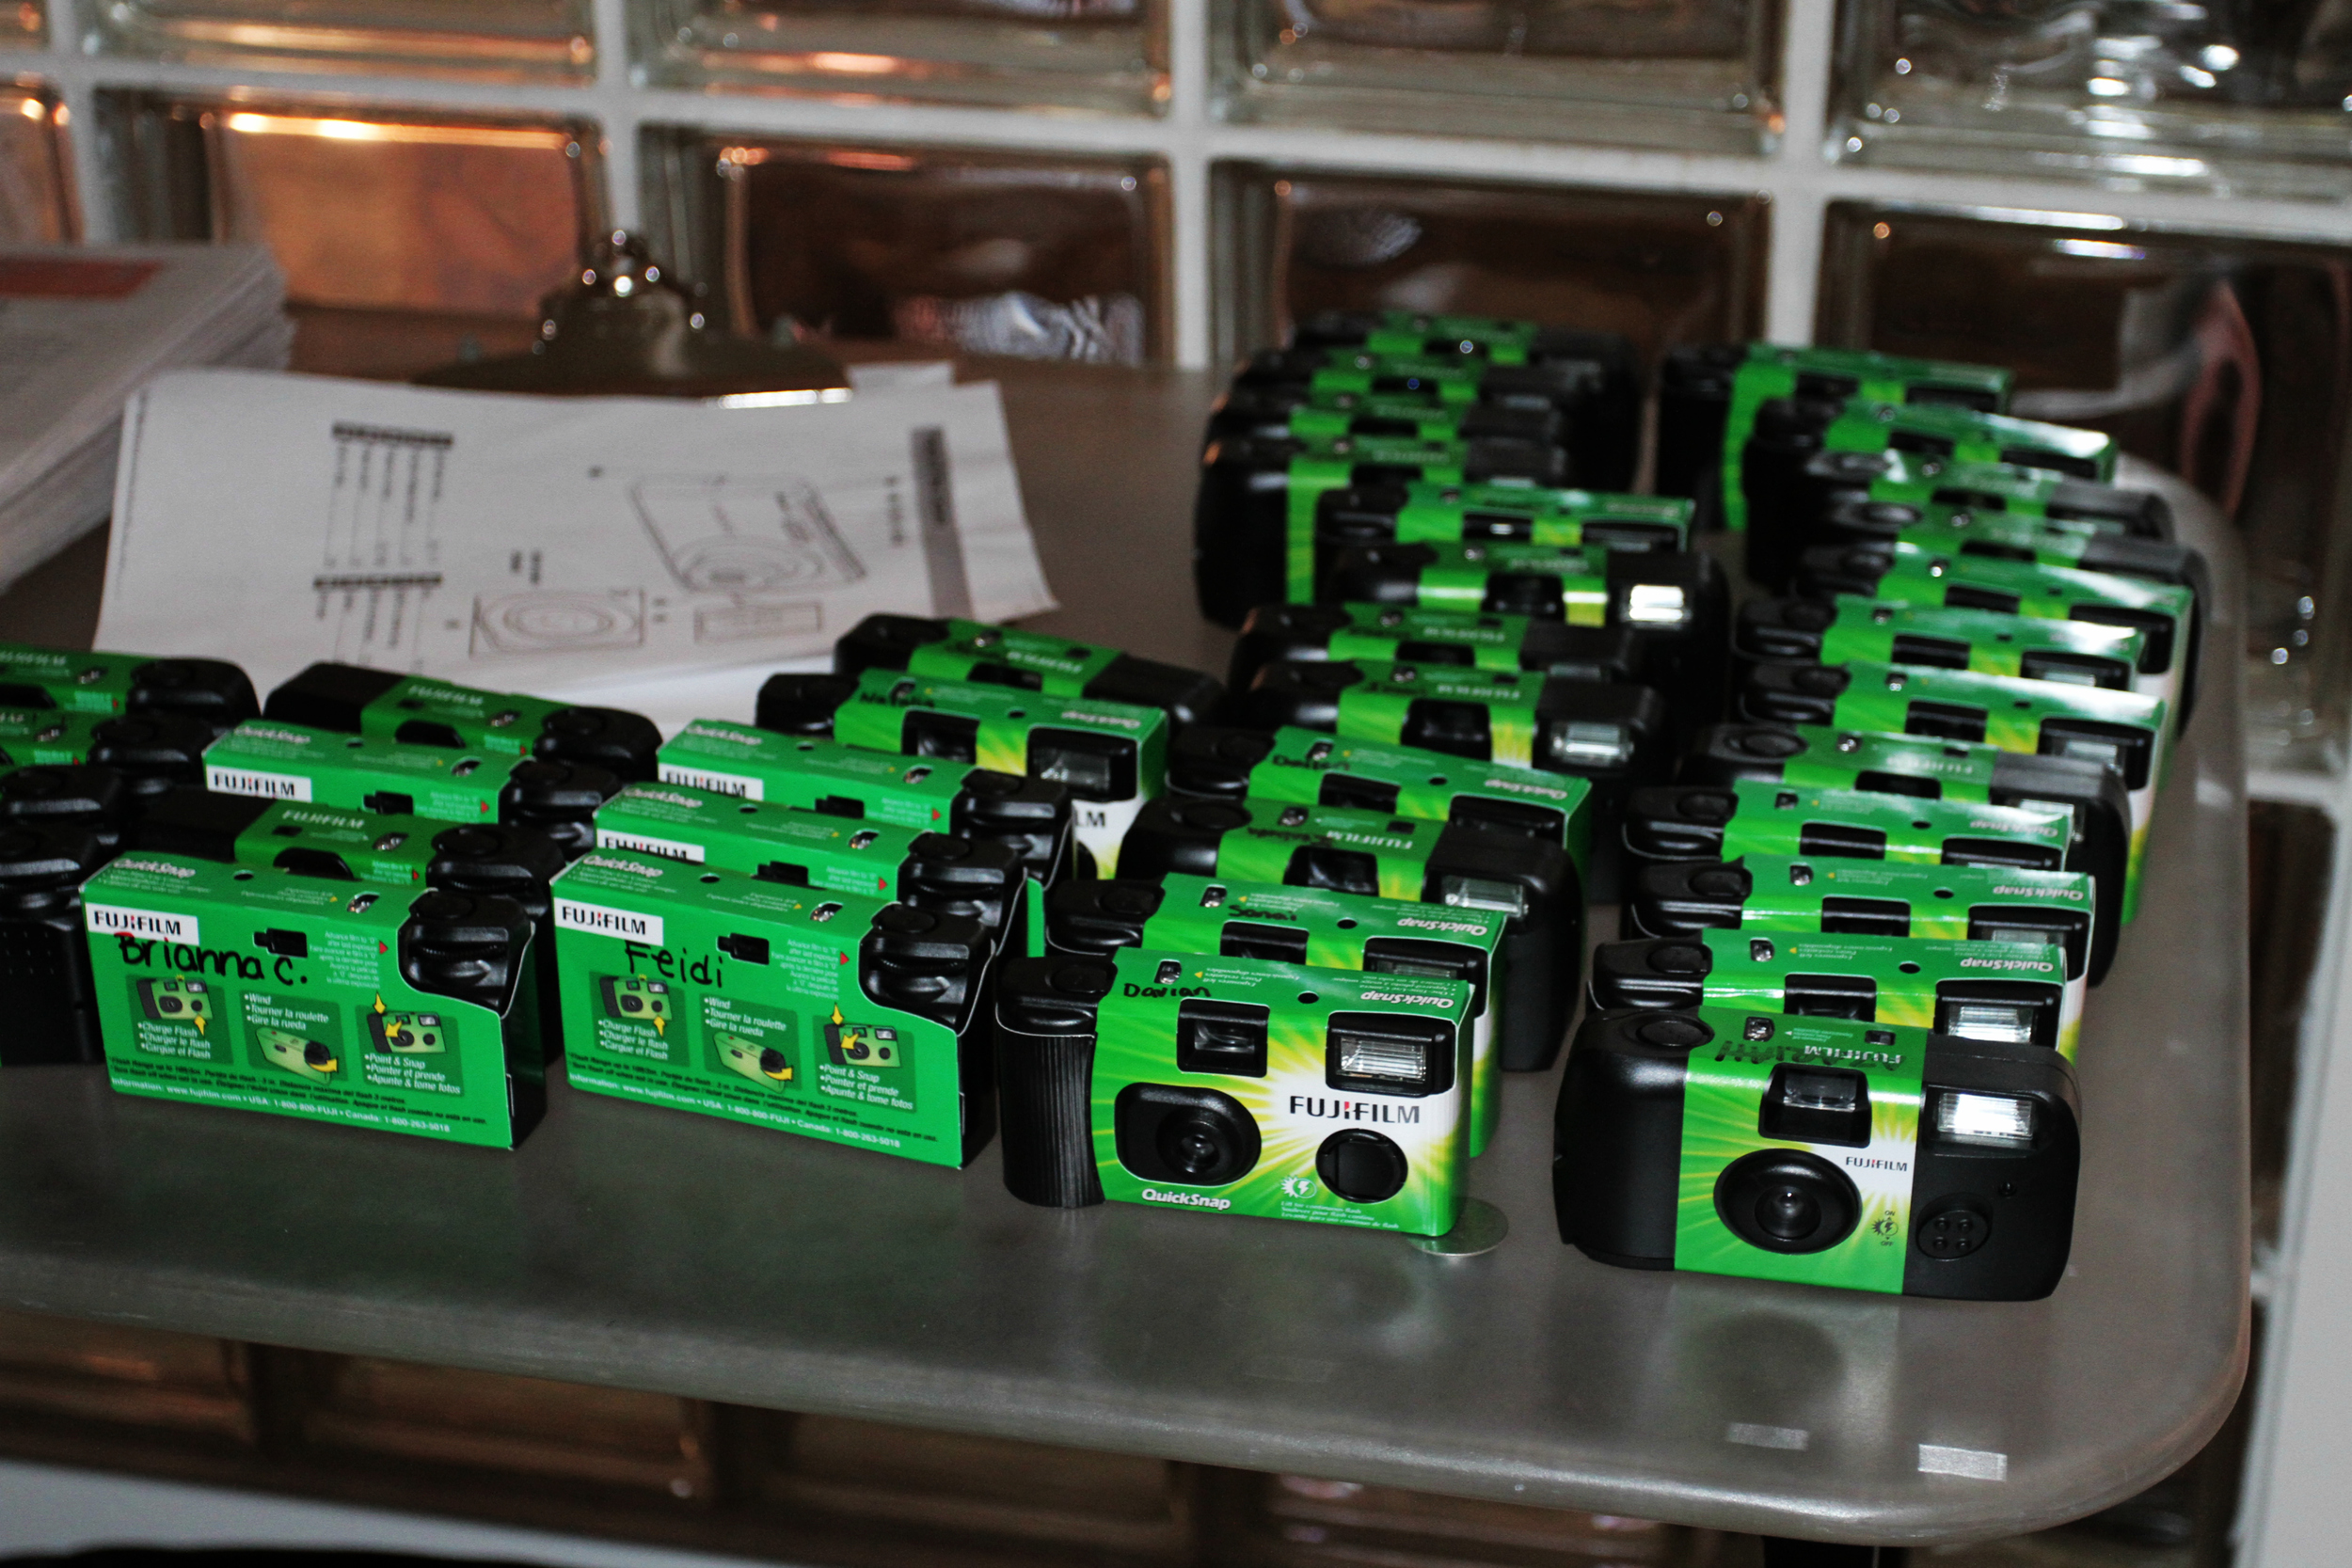 FujiFilm cameras provided to the students.